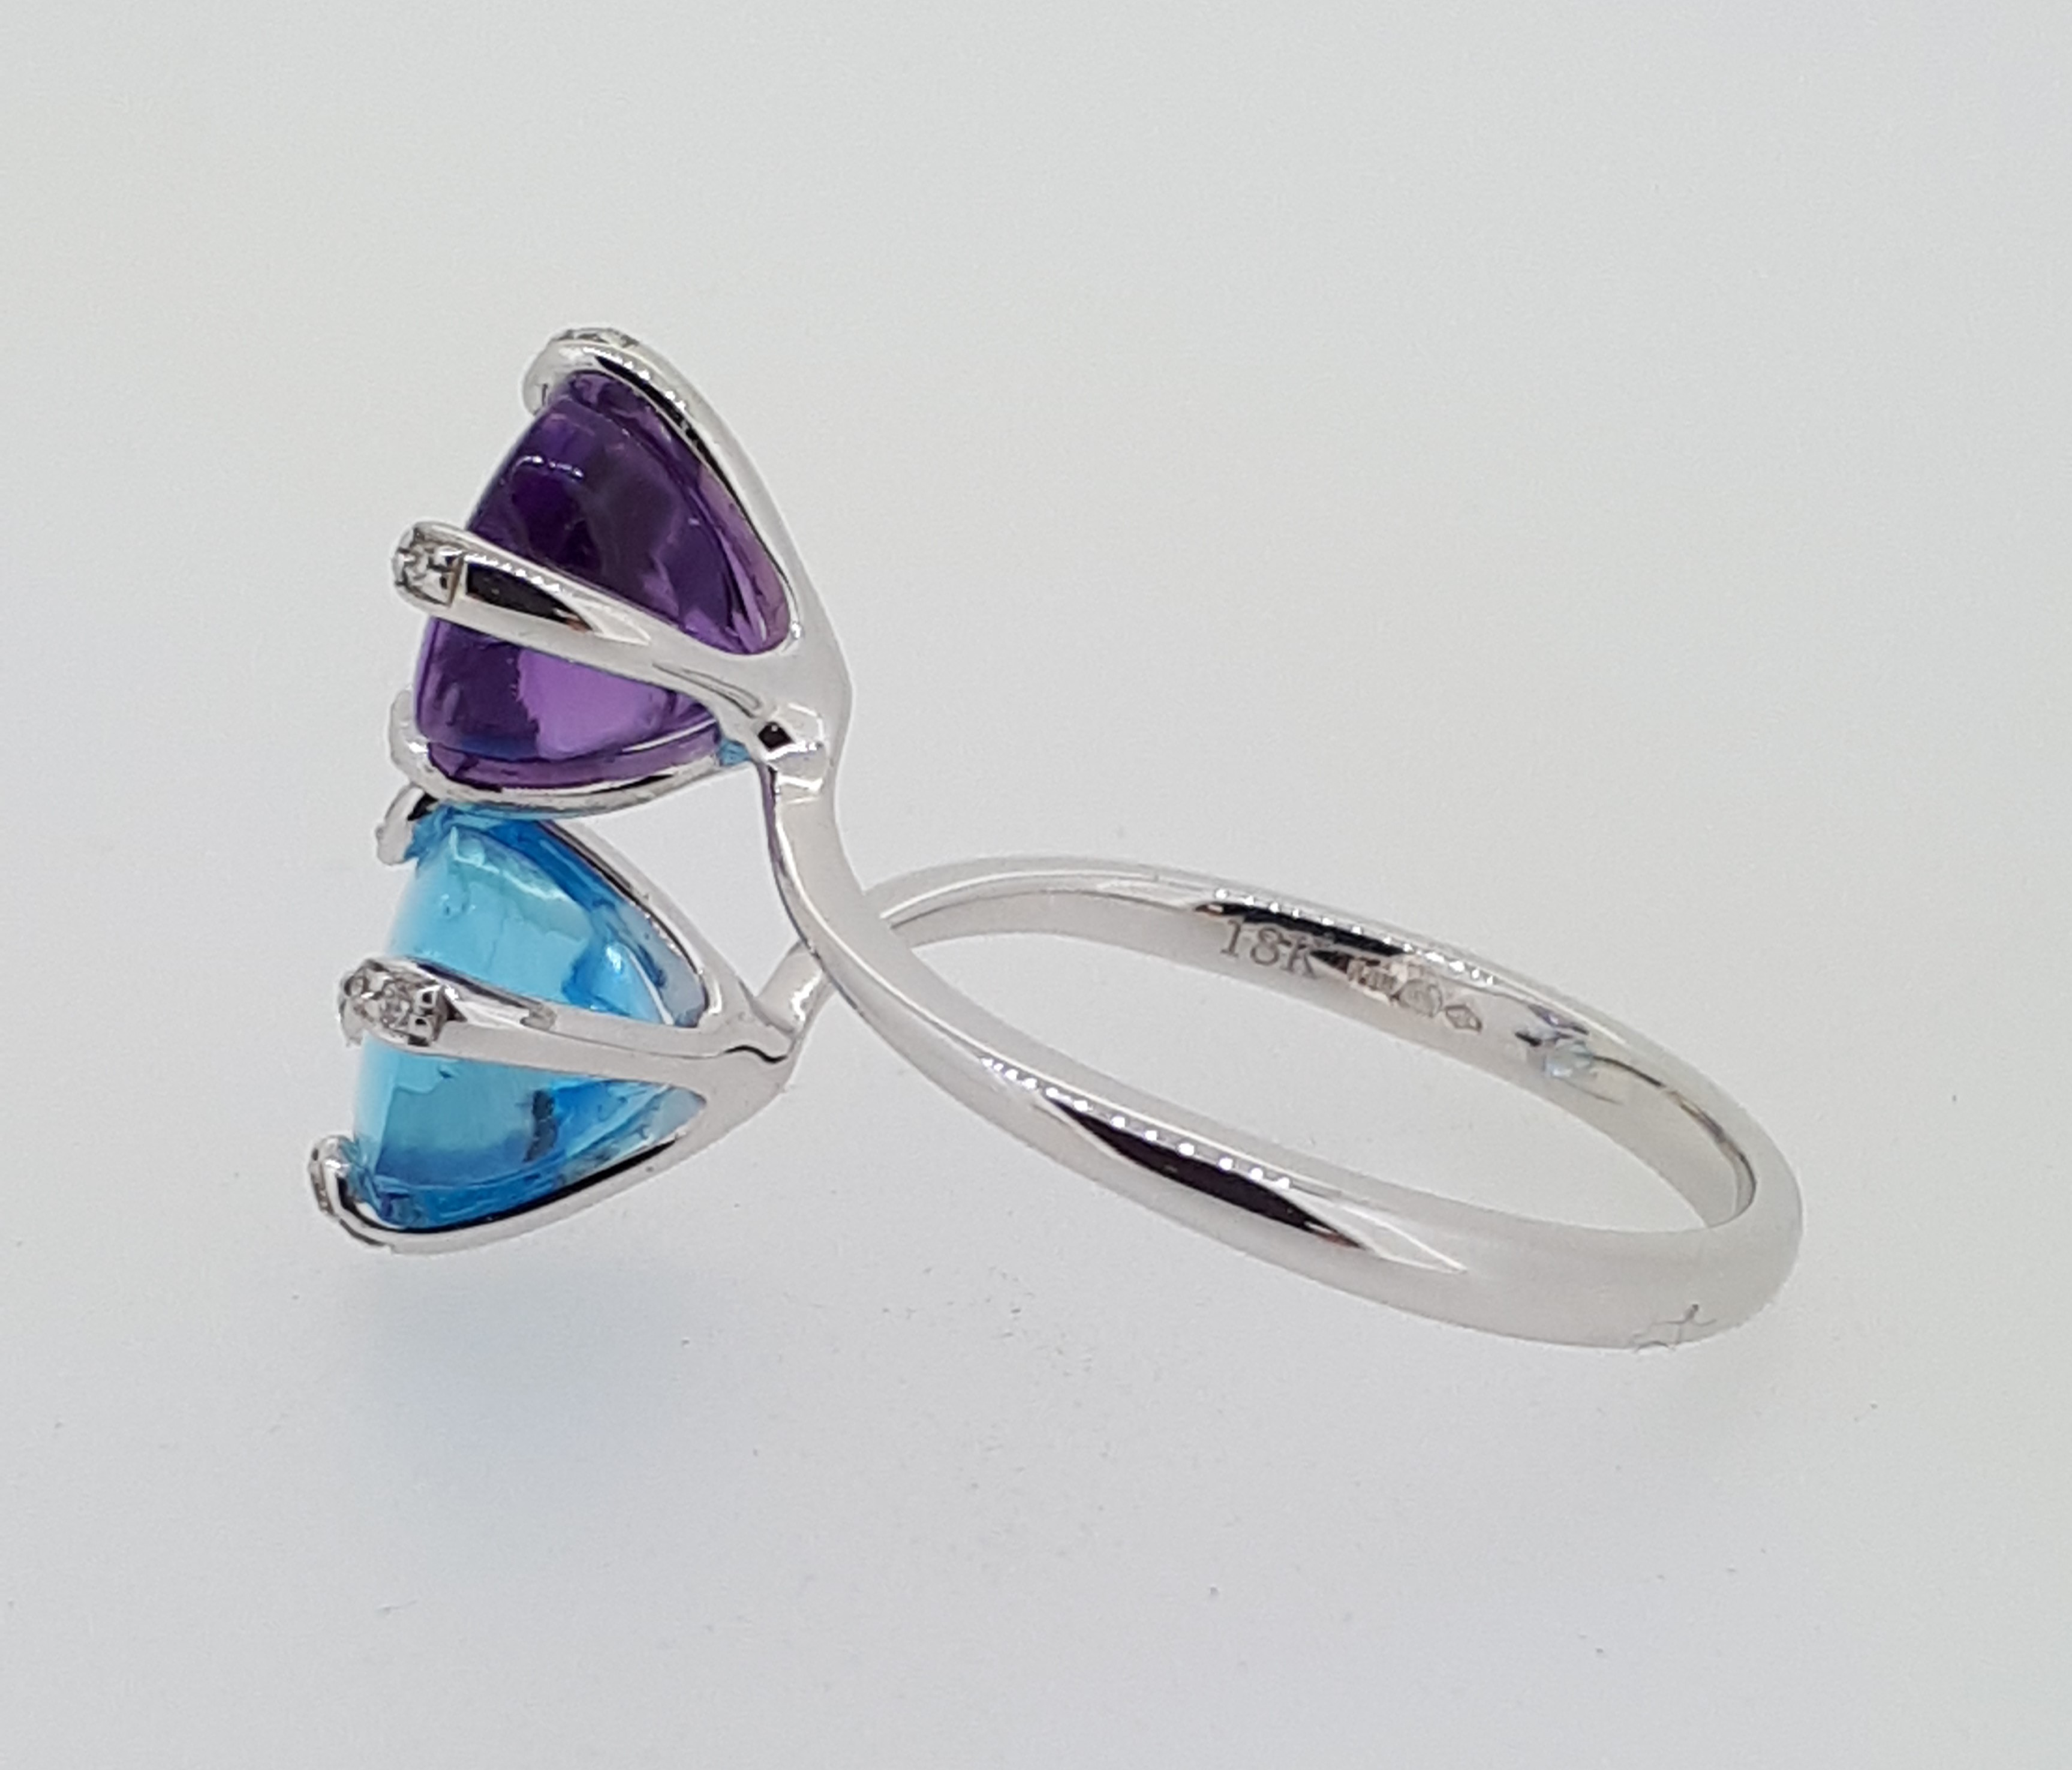 18ct (750) Topaz & Amethyst Crossover Ring with Diamond Claw Setting - Image 5 of 6